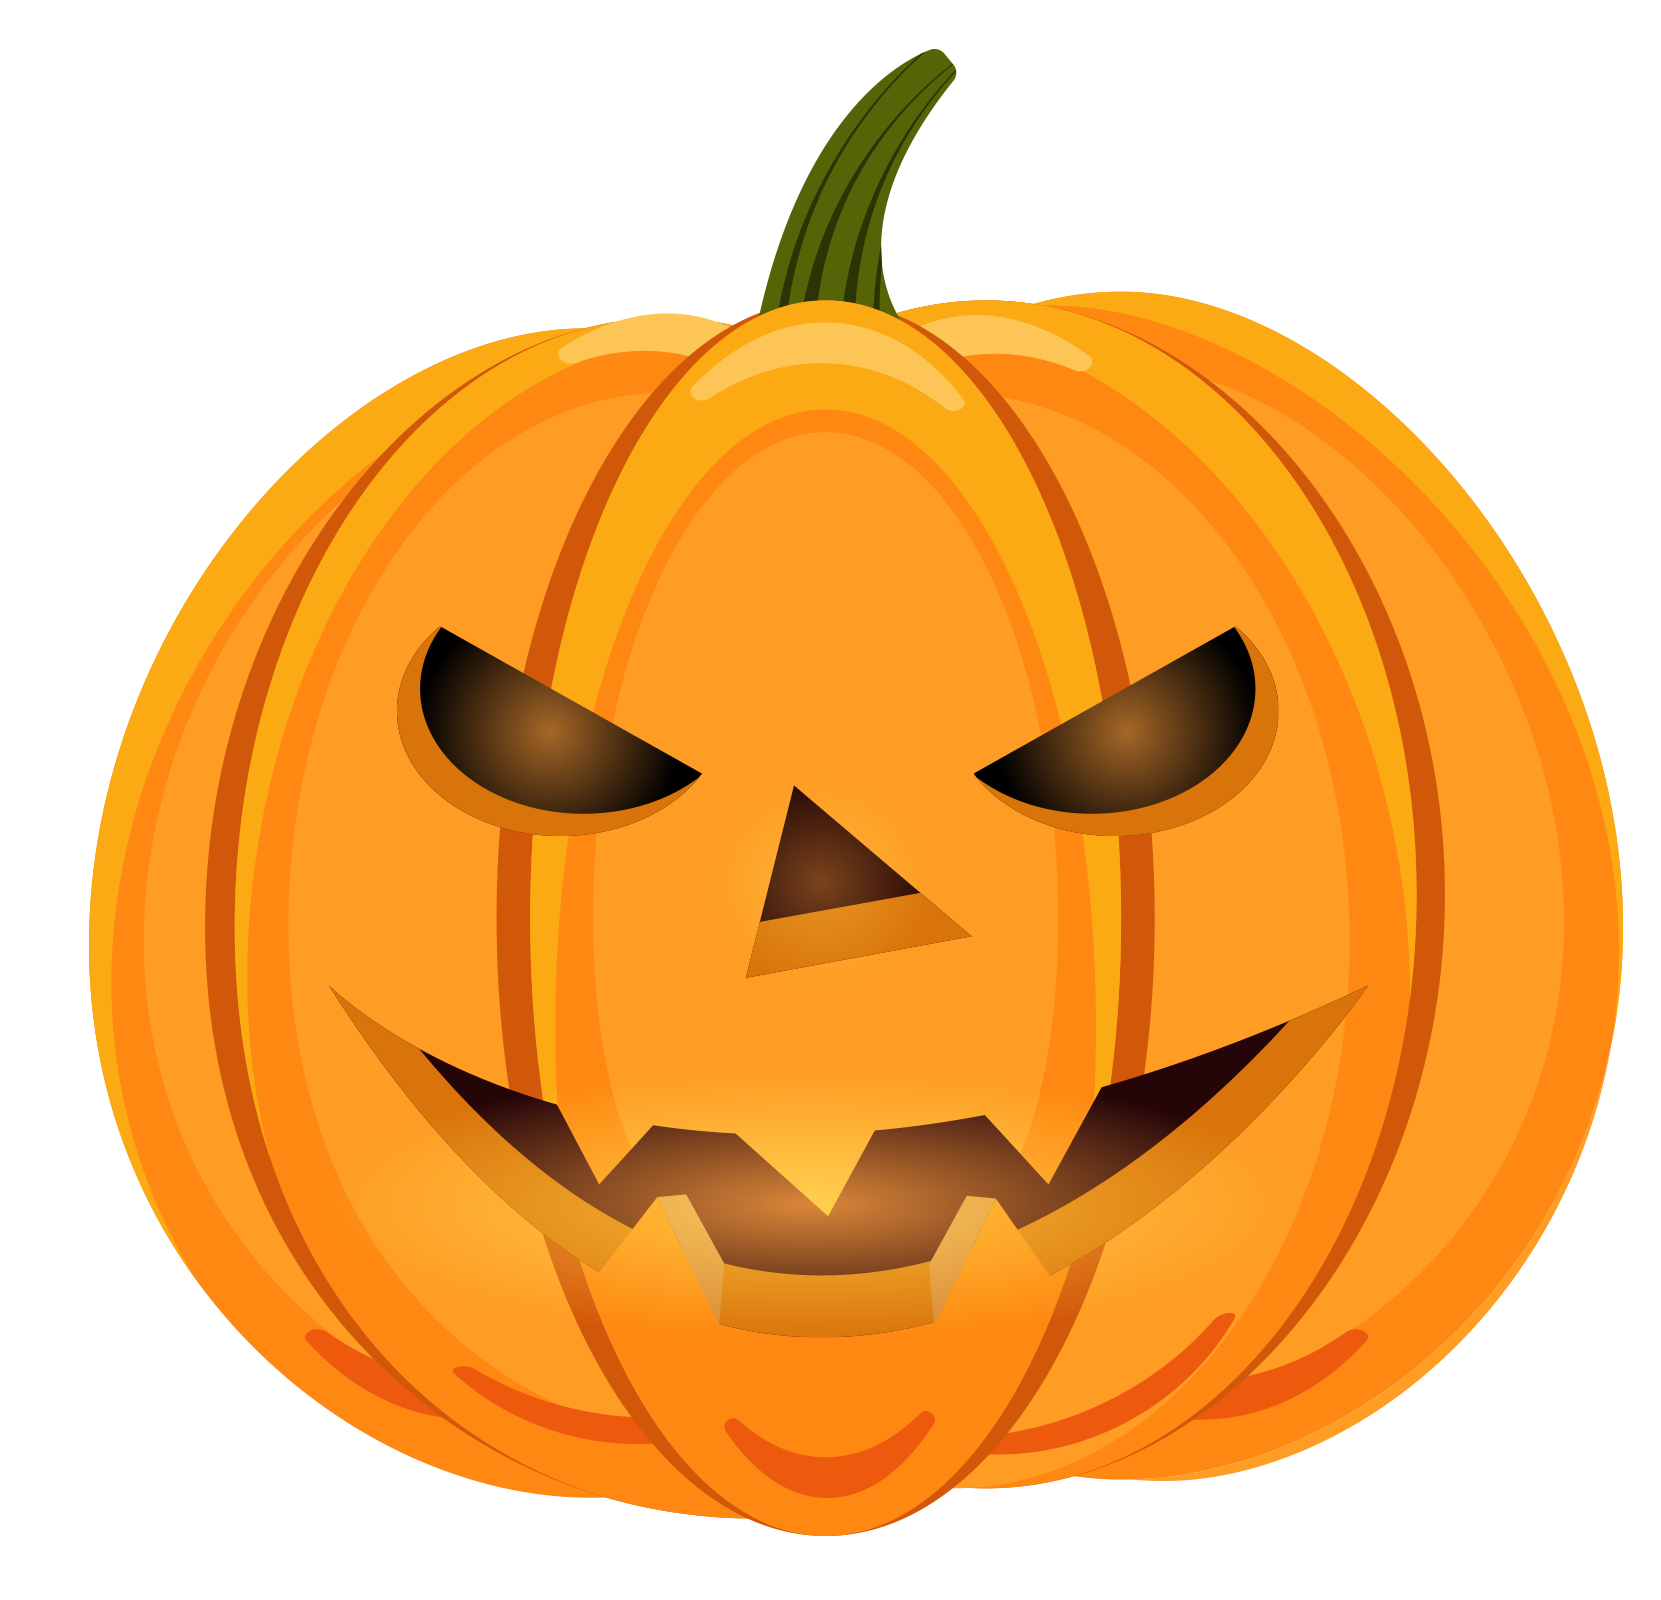 Free pumpkin face clipart image library download Calabaza Halloween Pumpkin Face - Cartoon smiling face pumpkin 1661 ... image library download